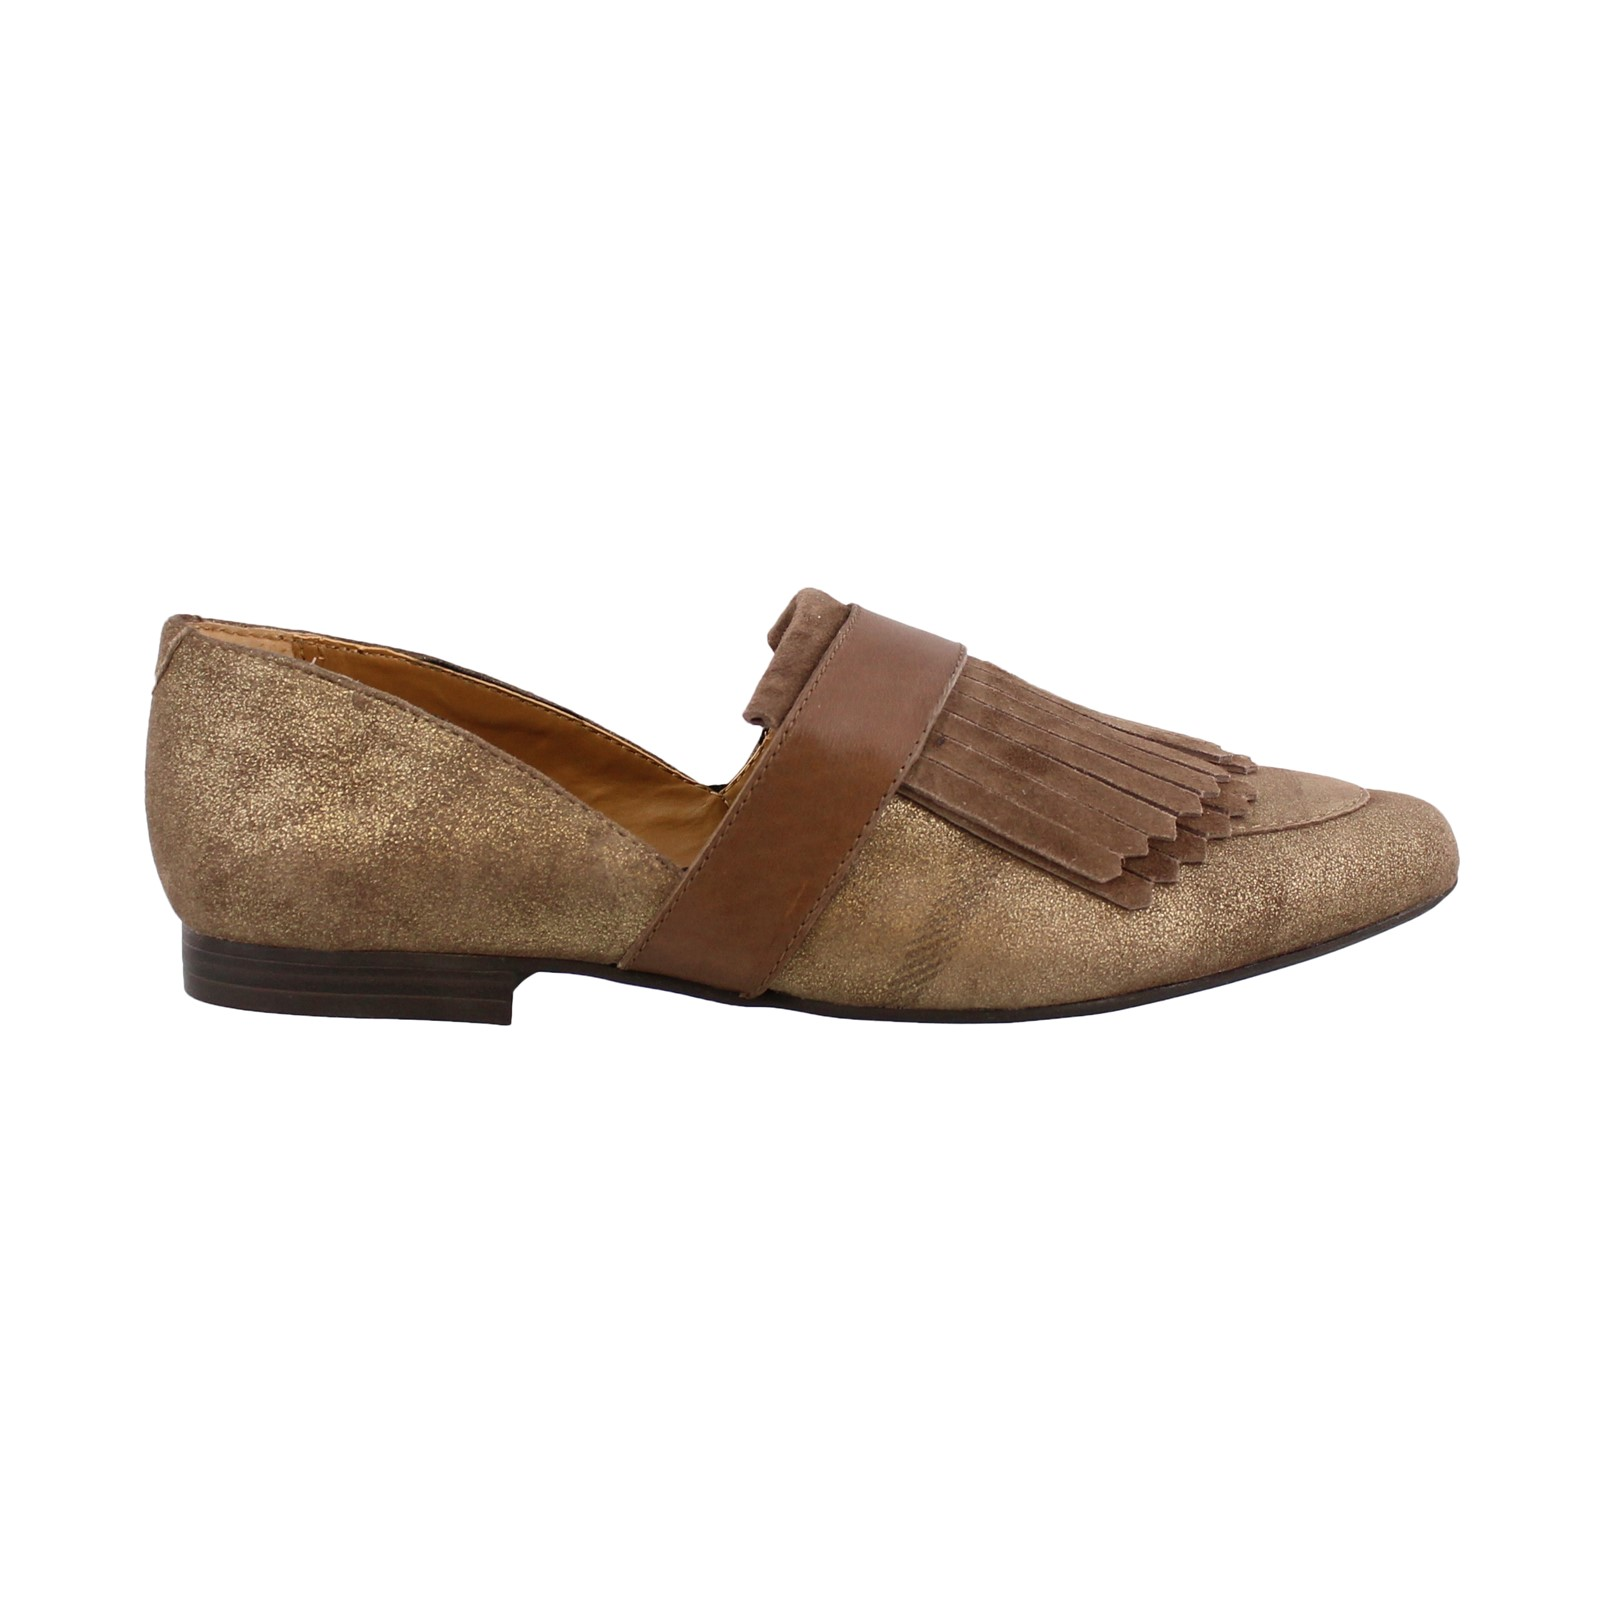 Women's GH Bass, Harlow Slip on Flats